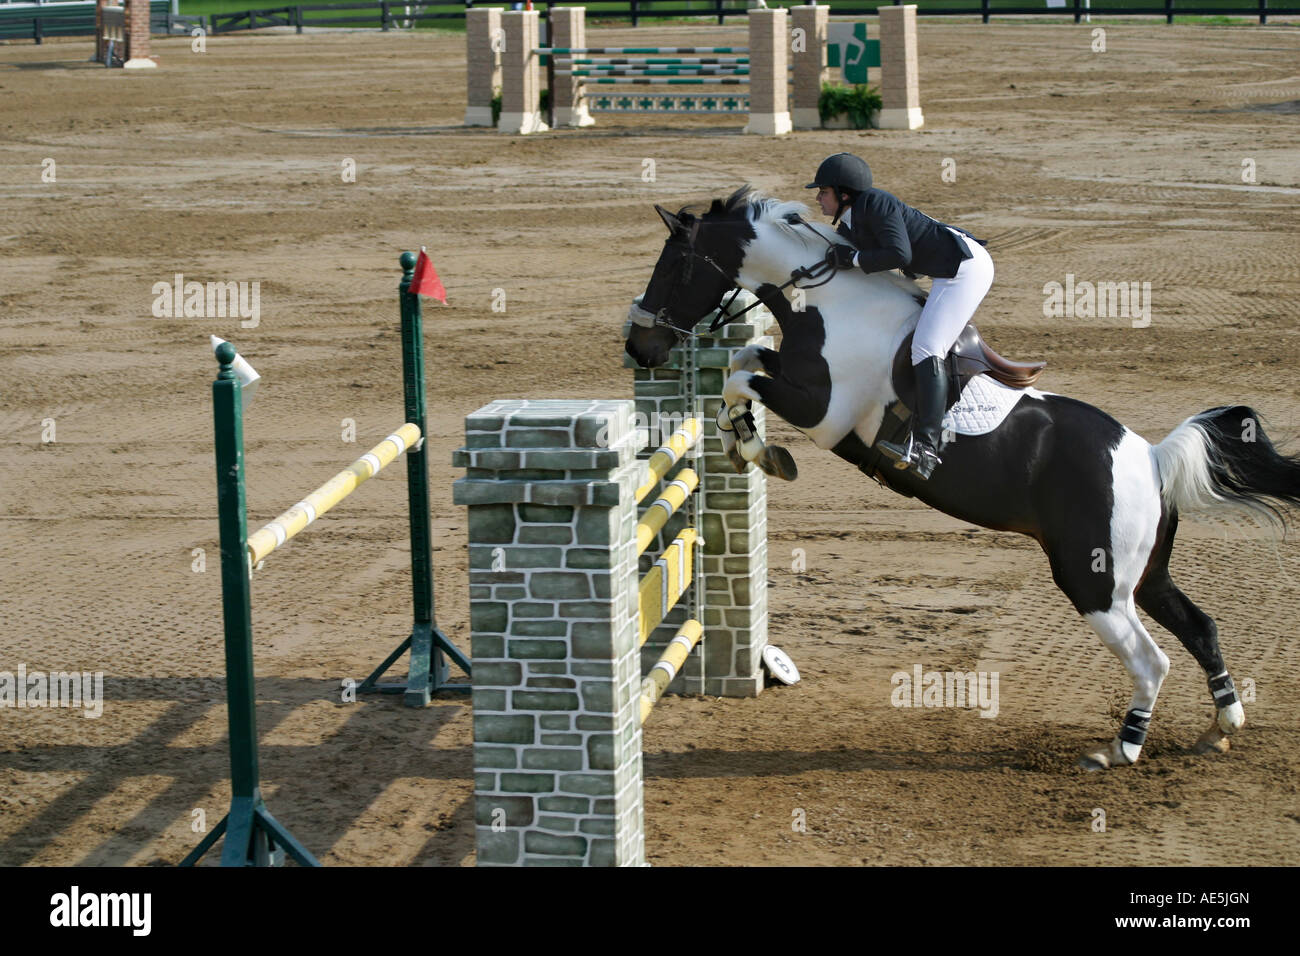 Equestrian Competition High Resolution Stock Photography And Images Alamy